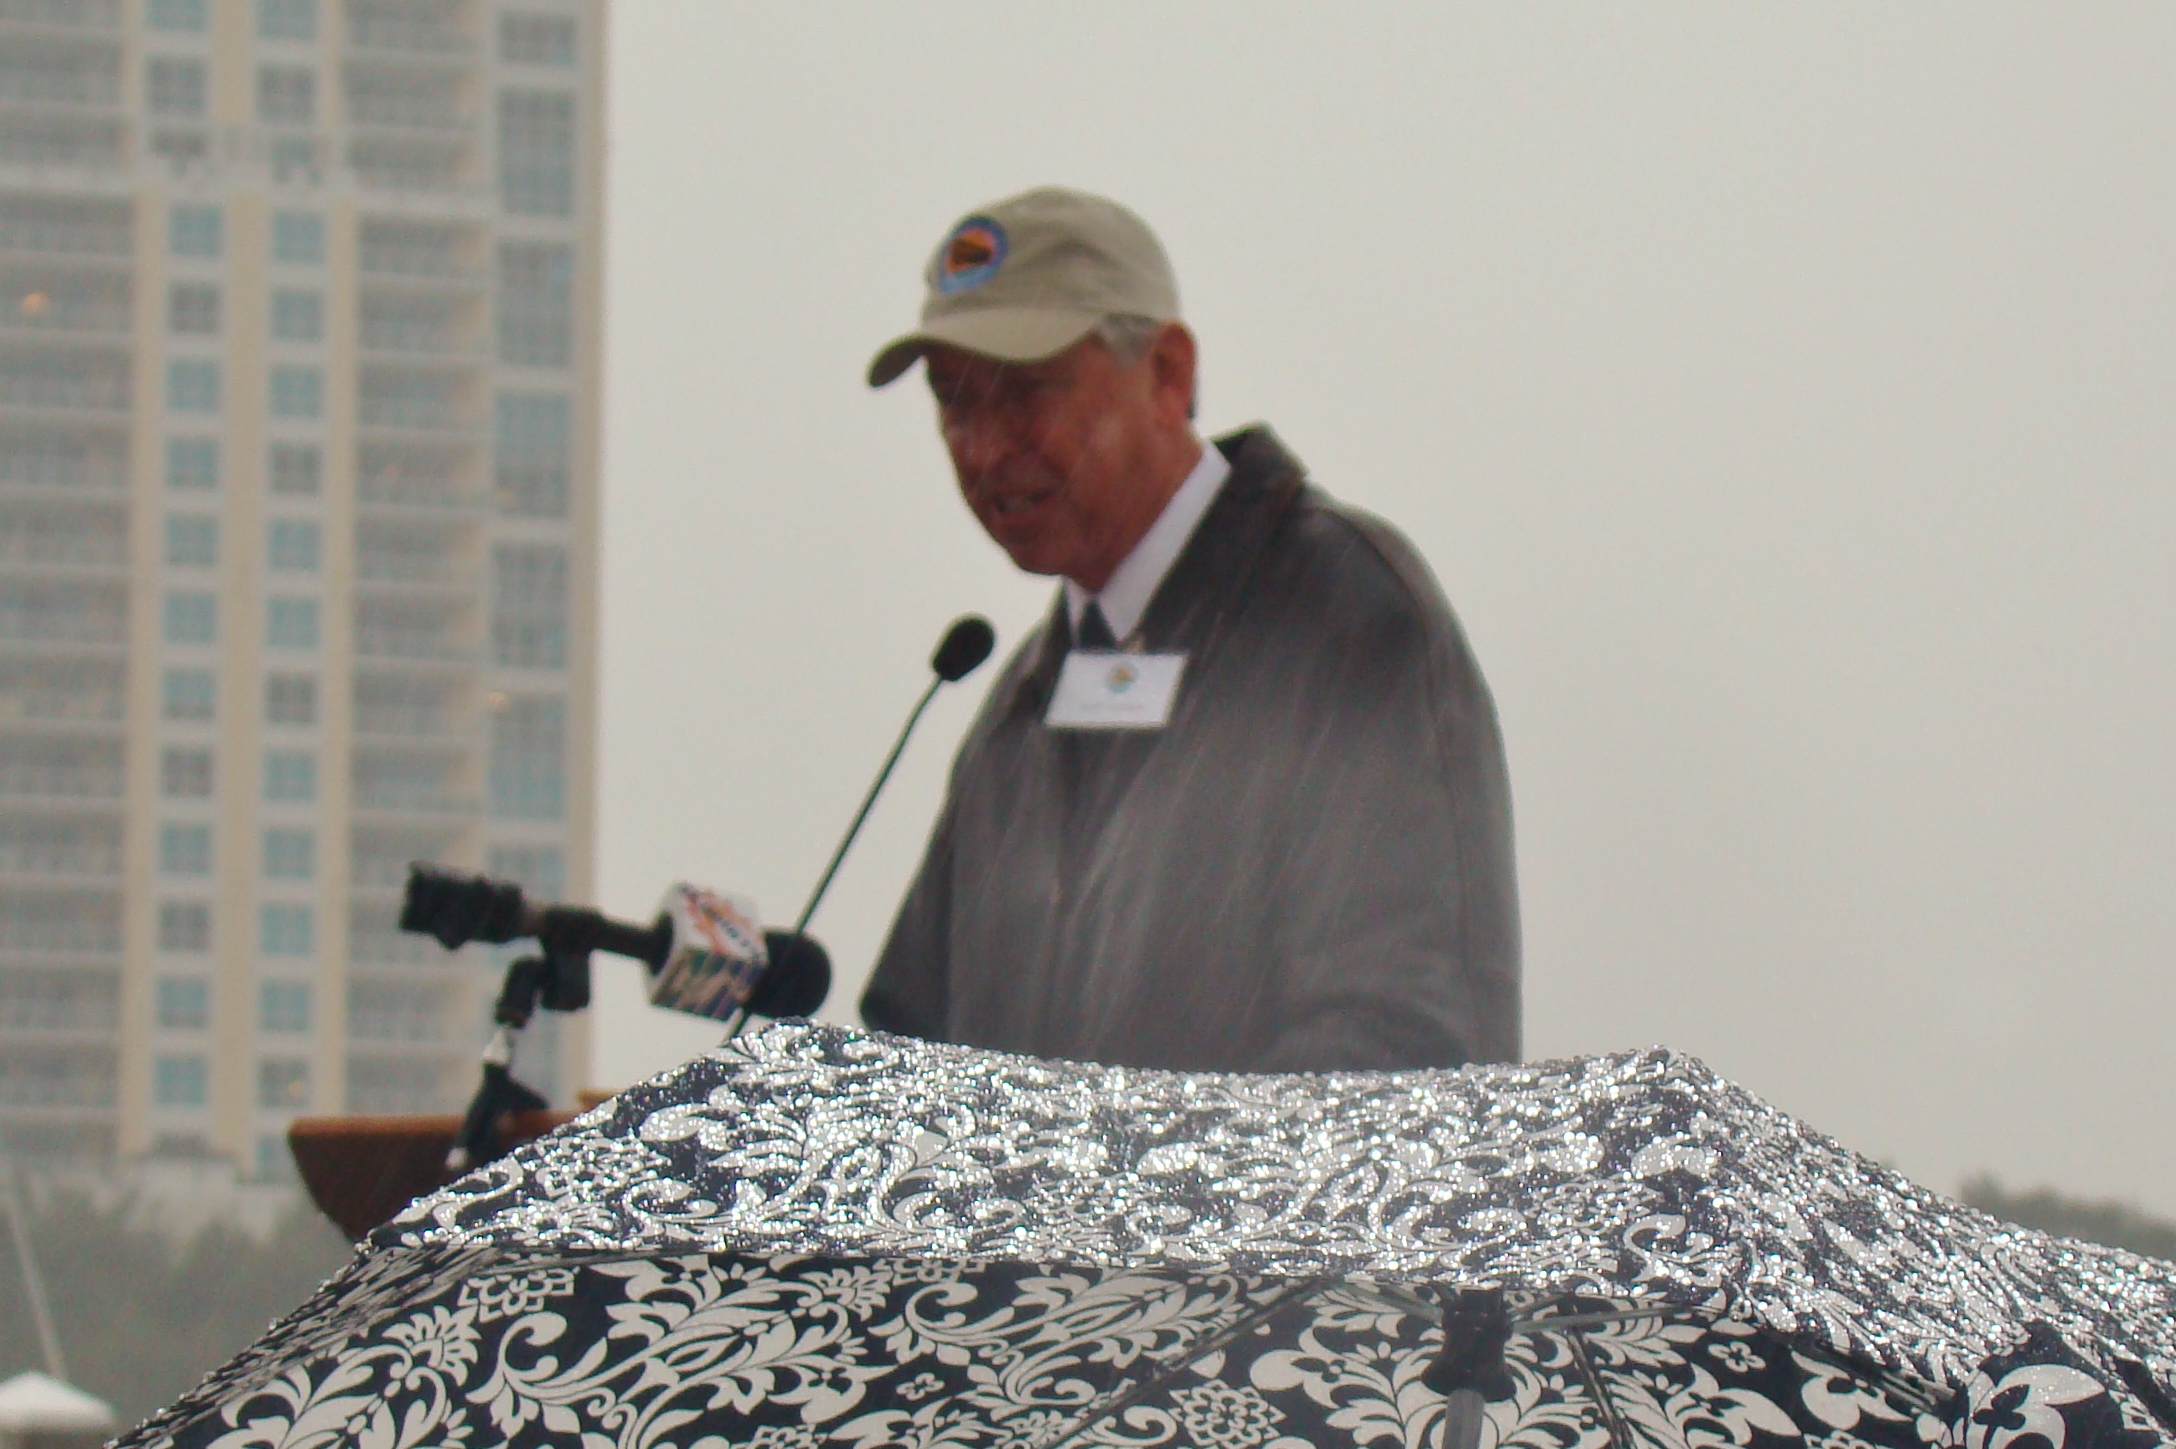 Will Michaels addressing crowd in rain, 1 Jan '14.JPG